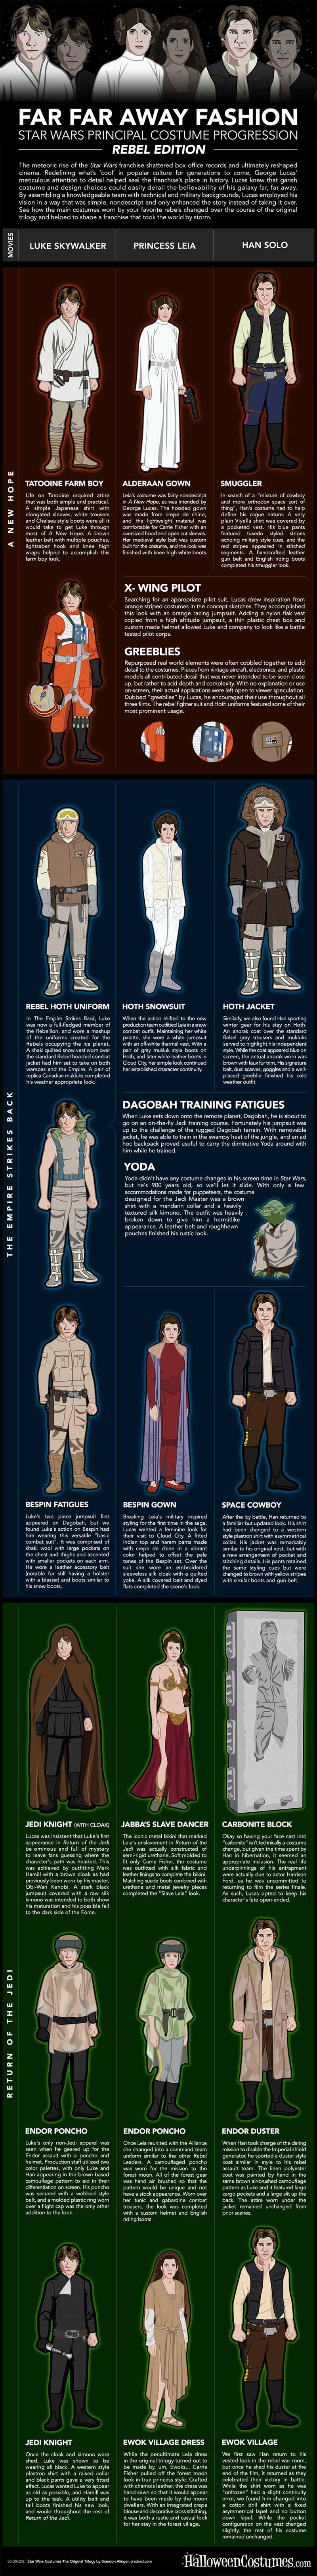 Star Wars Fashion Infographic